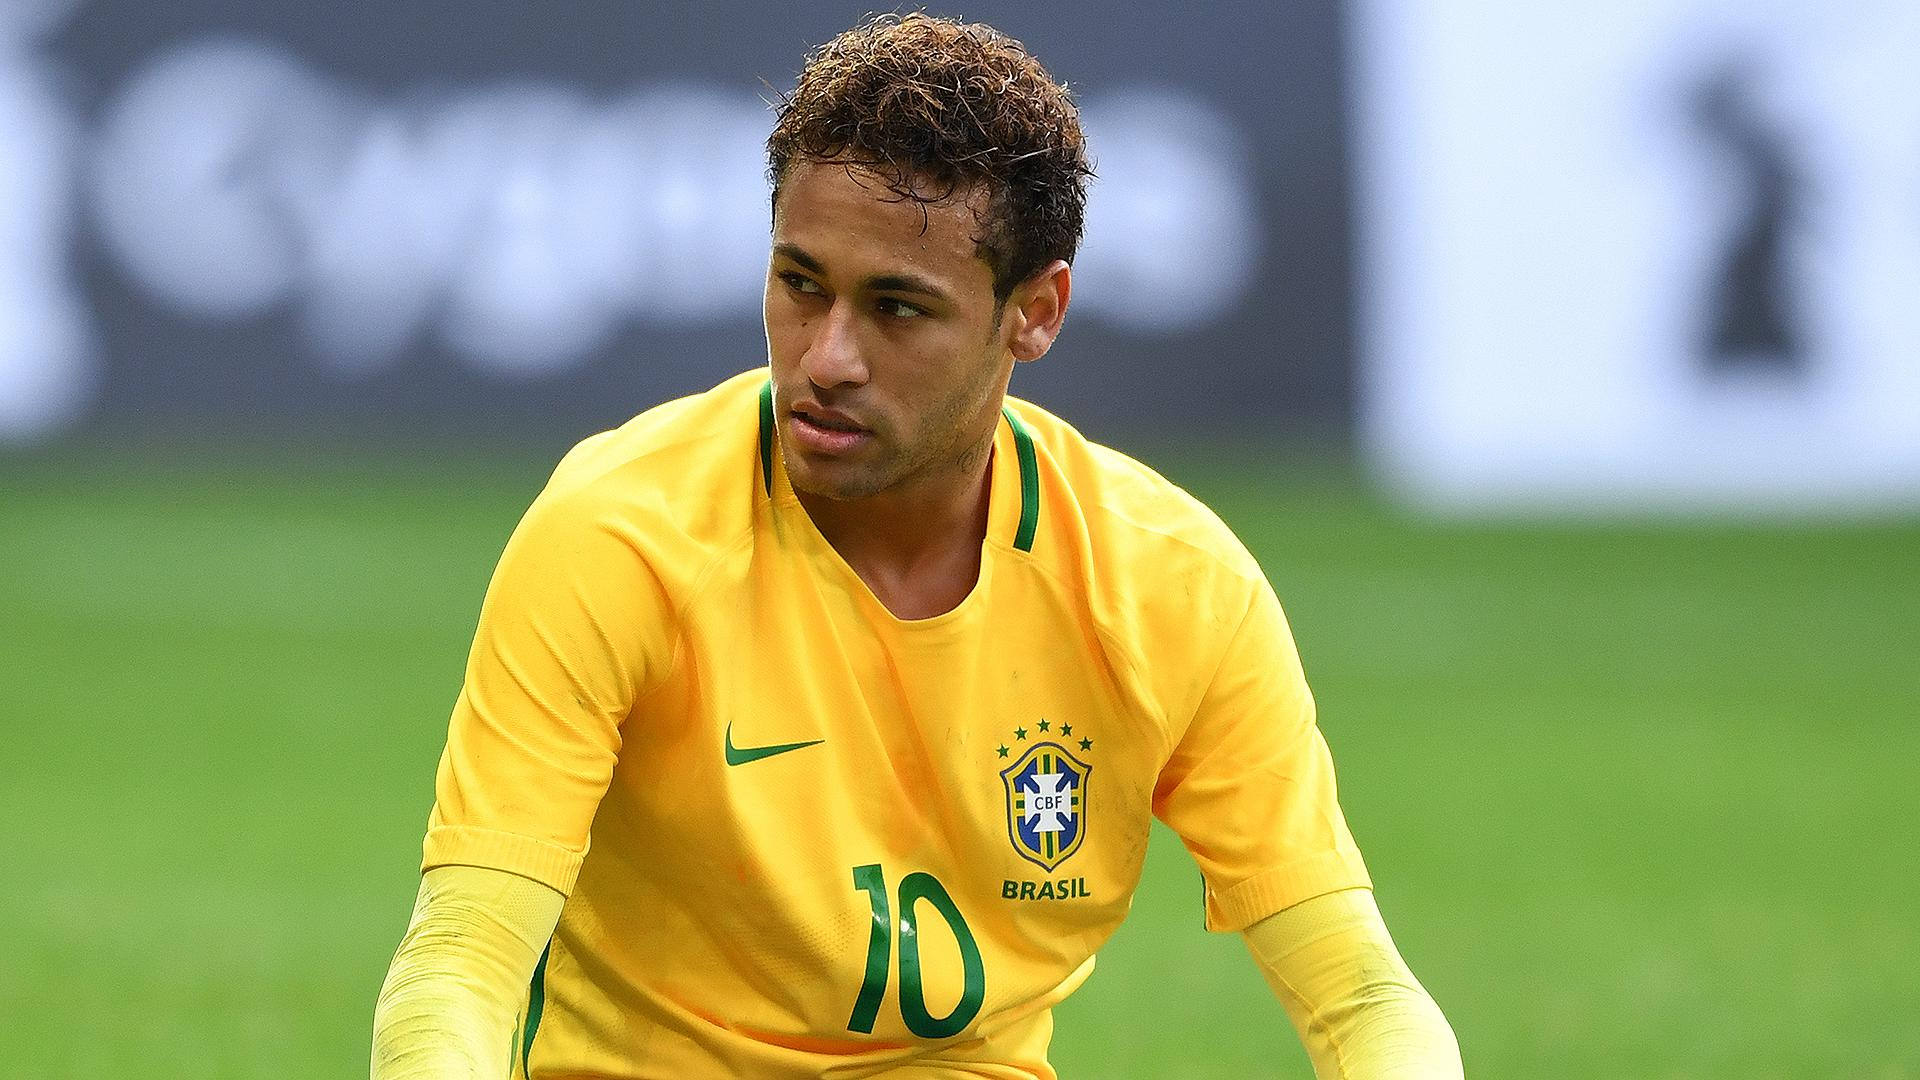 Could Neymar hurt Brazil's chances at World Cup? [Video]